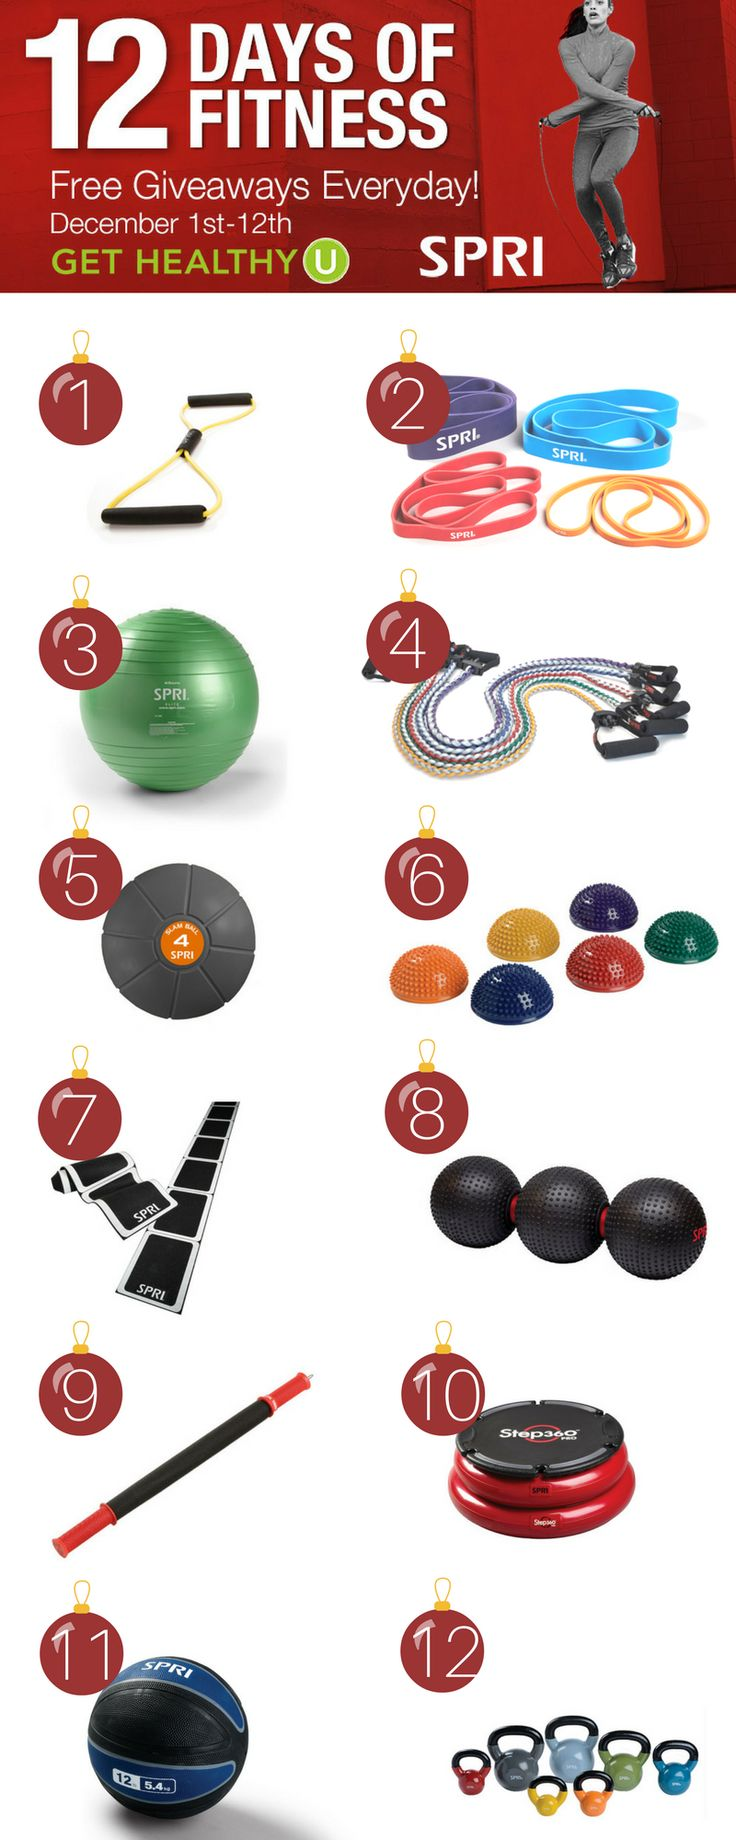 Get Ready- it's the 2nd annual 12 DAYS OF FITNESS with SPRI products and GET HEALTHY U !  Everyday for 12 days we will come LIVE on our facebook page around 8am CST  to demonstrate a fun piece of fitness equipment for you to use at home!  Everyday there will be discounts and a lucky winner.   Join in on the fun starting THURSDAY Dec 1st !